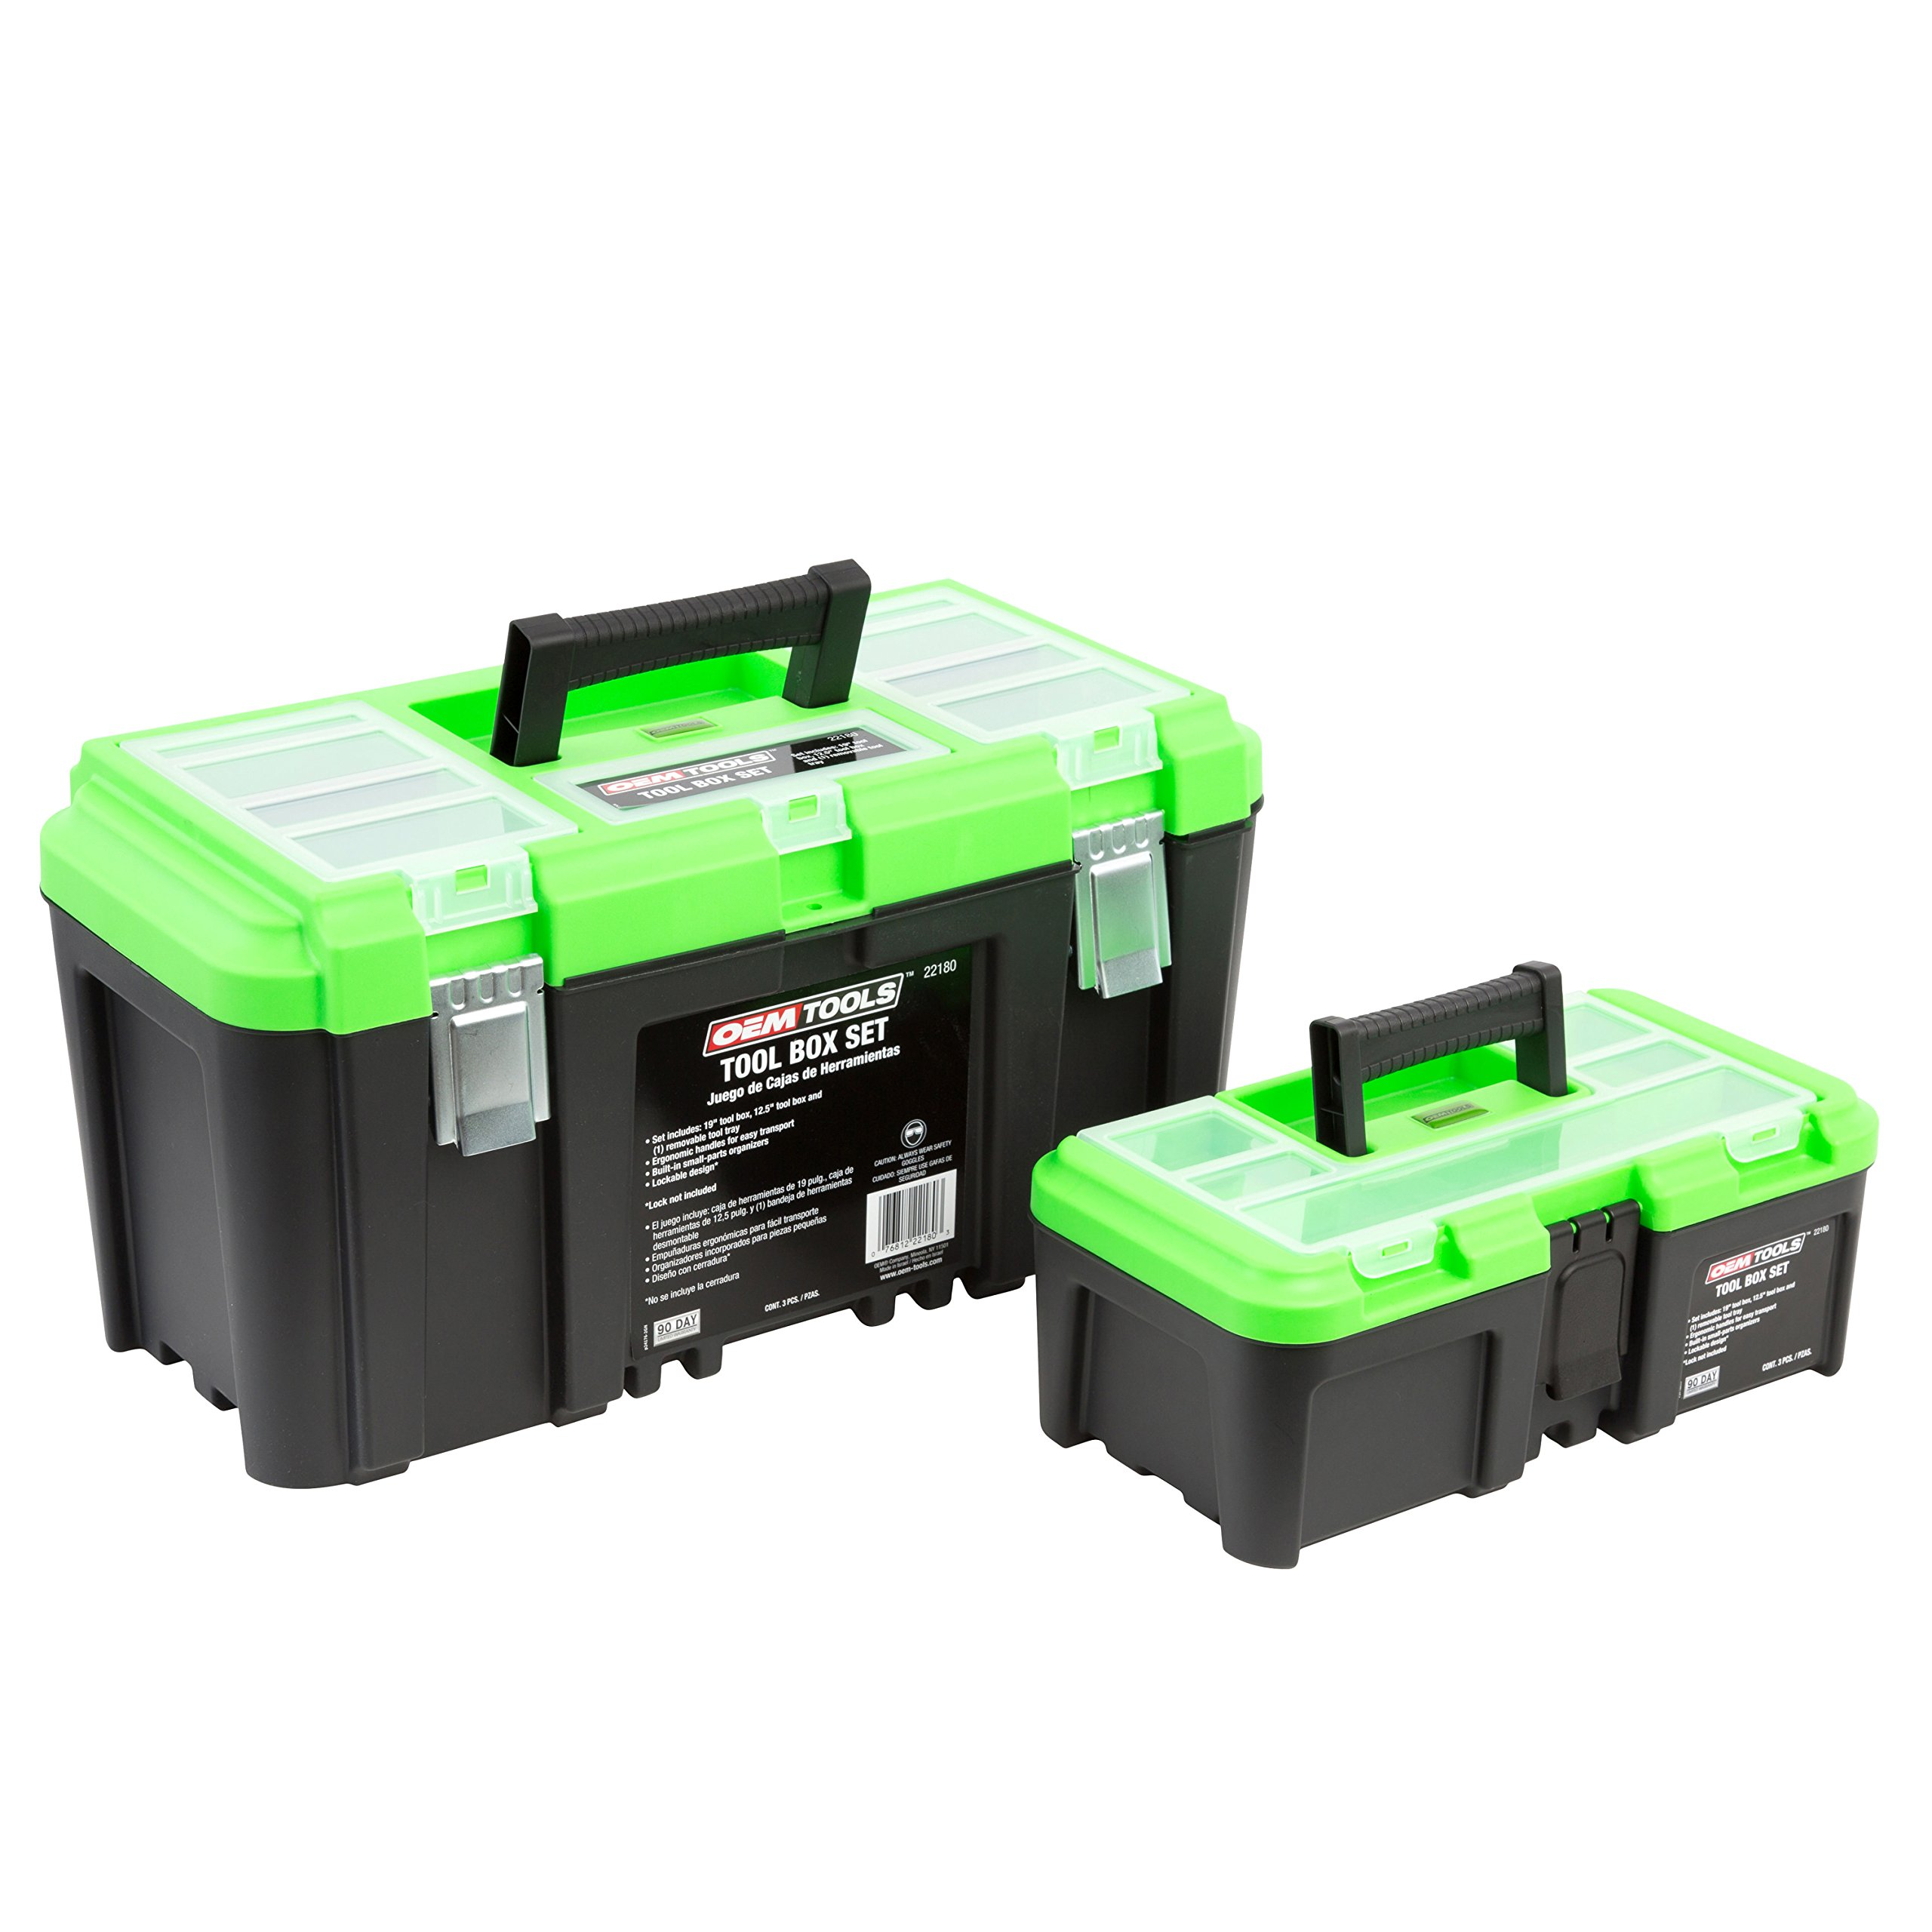 OEMTOOLS 22180 Tool Box Set Includes 19'' Tool Box, 12.5'' Tool Box with Removable Tool Tray